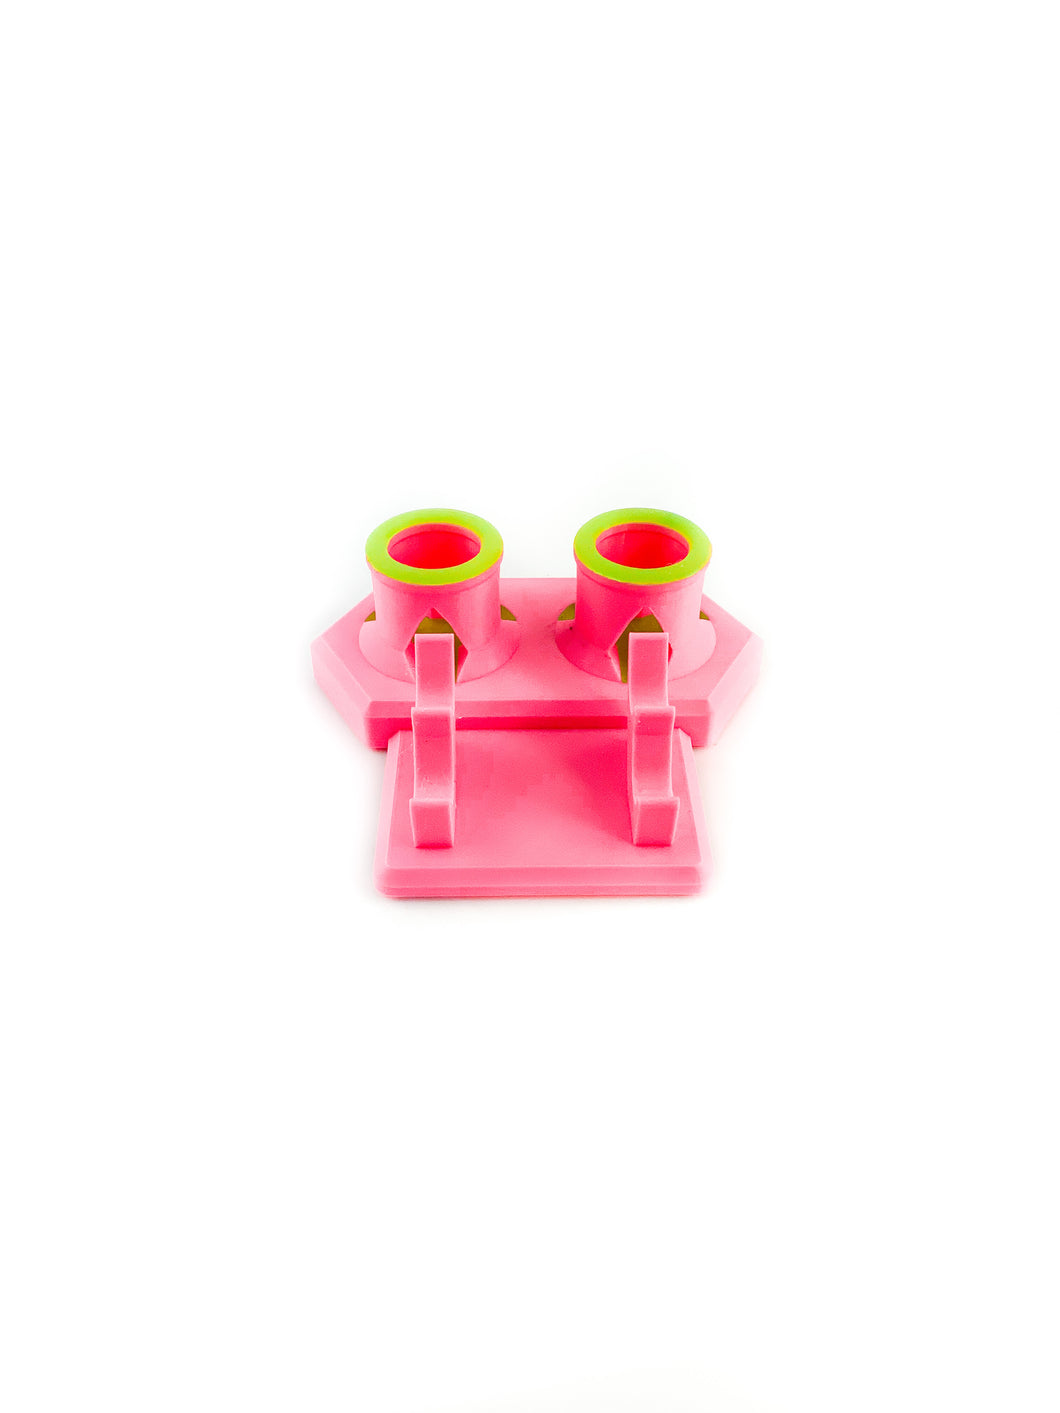 Glob Mob - Mini Combo Station  - Pink/Yellow